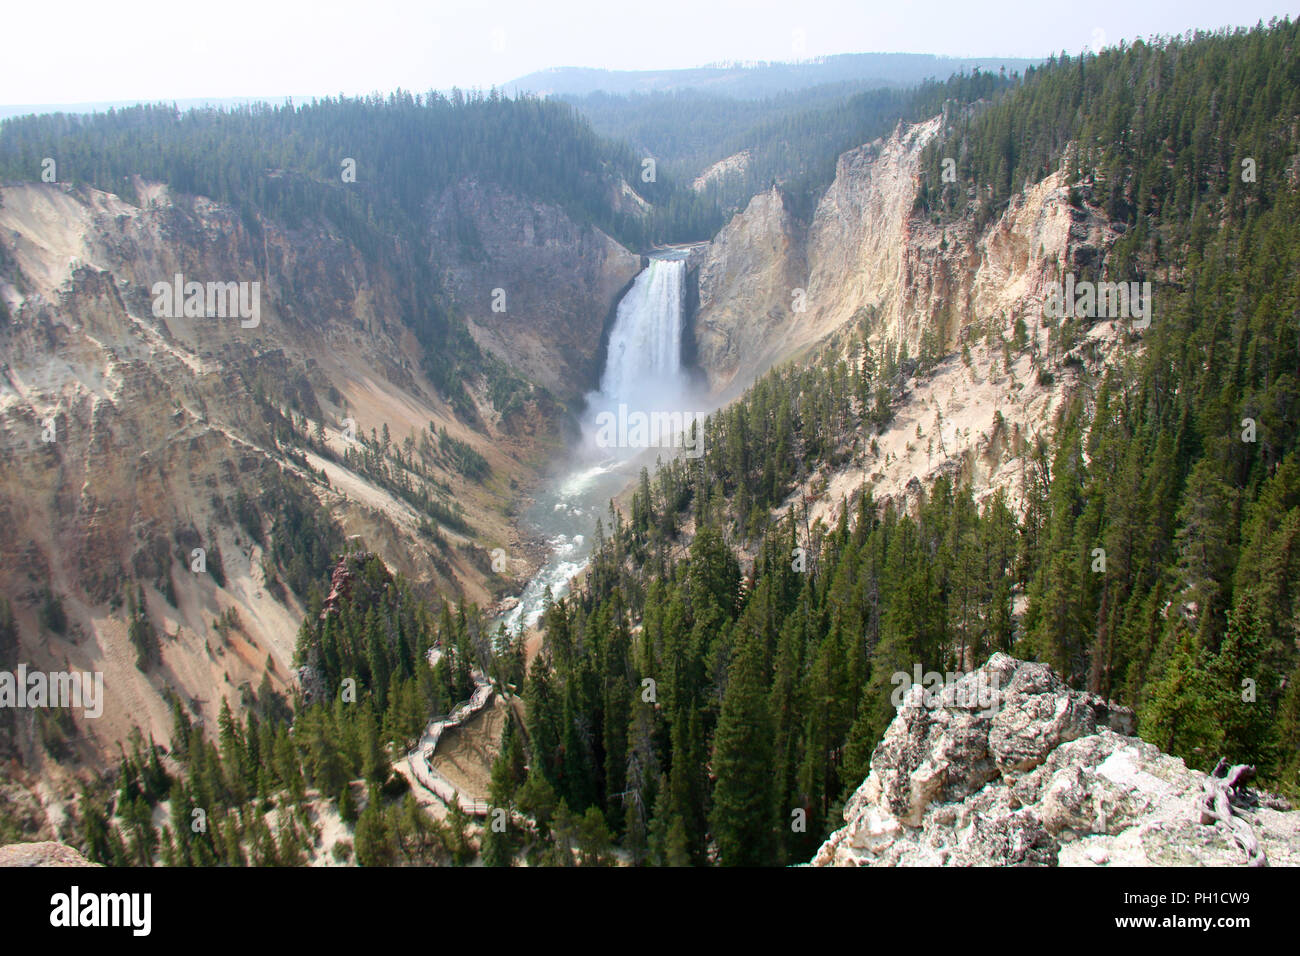 The Upper Falls of the Yellowstone River in the Grand Canyon of the Yellowstone, Yellowstone National Park, Wyoming. - Stock Image